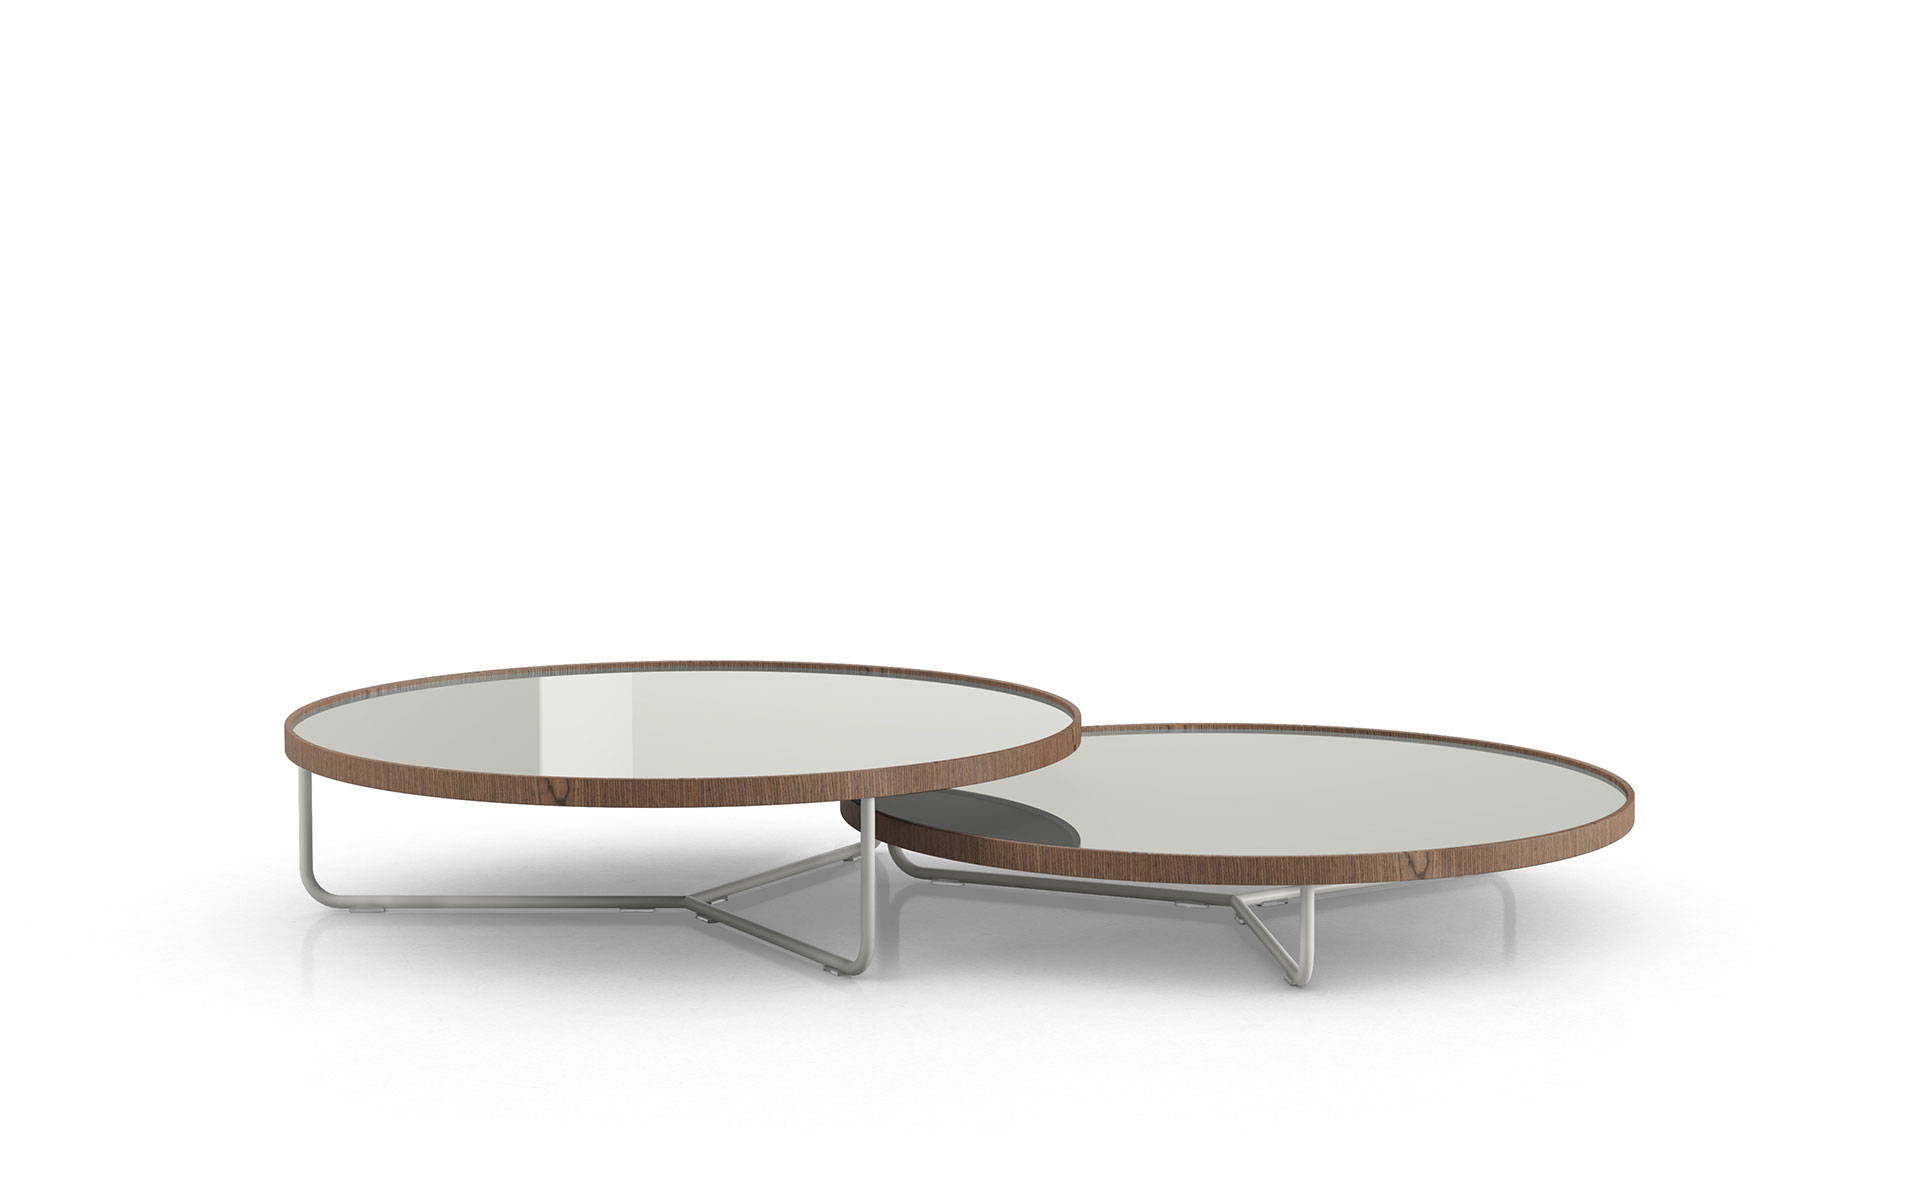 Enjoyable Modloft Adelphi Nesting Coffee Tables Caraccident5 Cool Chair Designs And Ideas Caraccident5Info